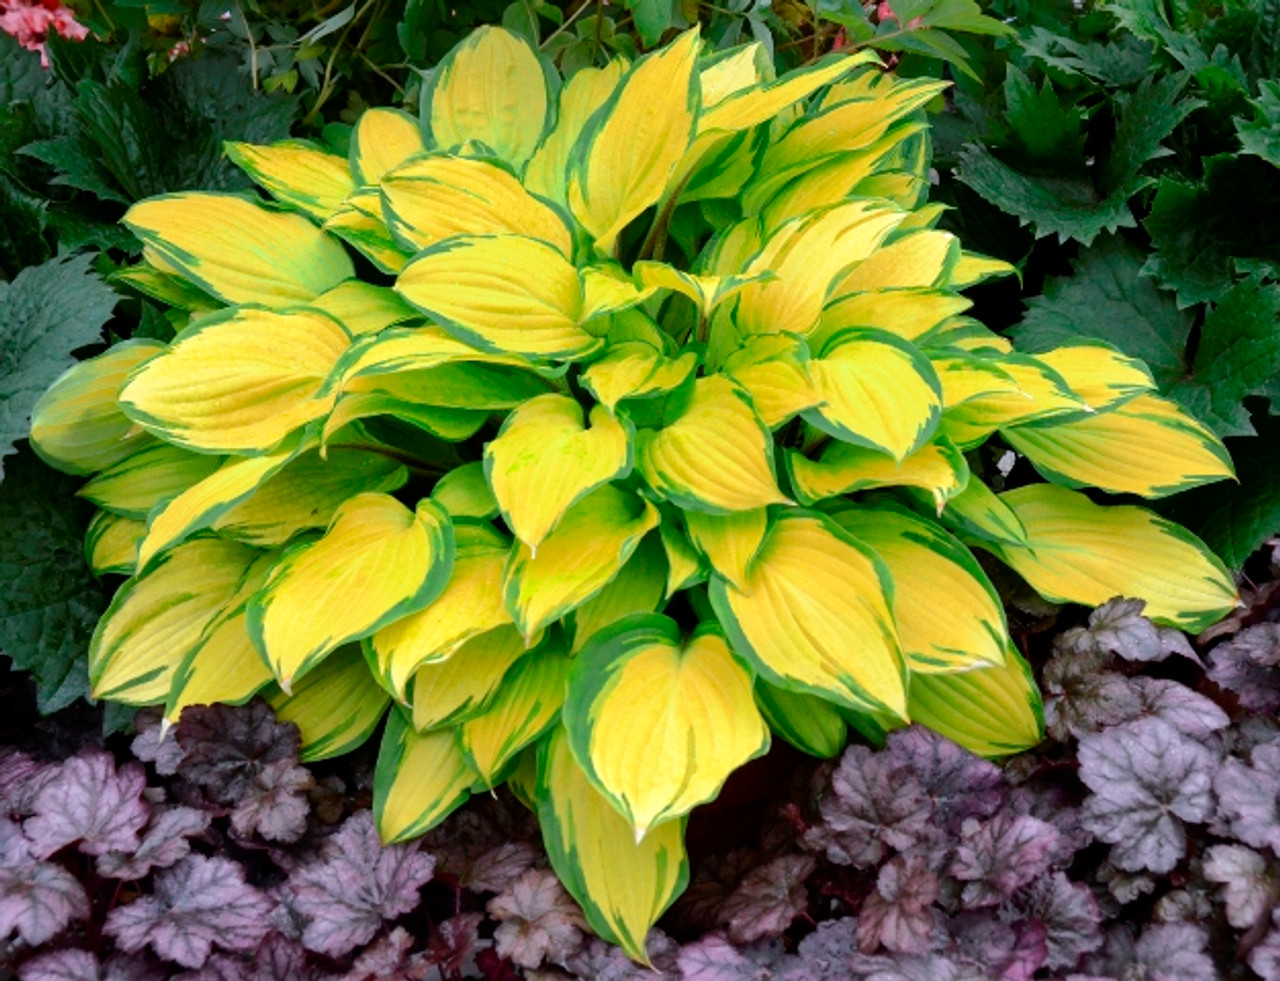 Island Breeze Hosta Shade Perennial Medium Hosta Plant